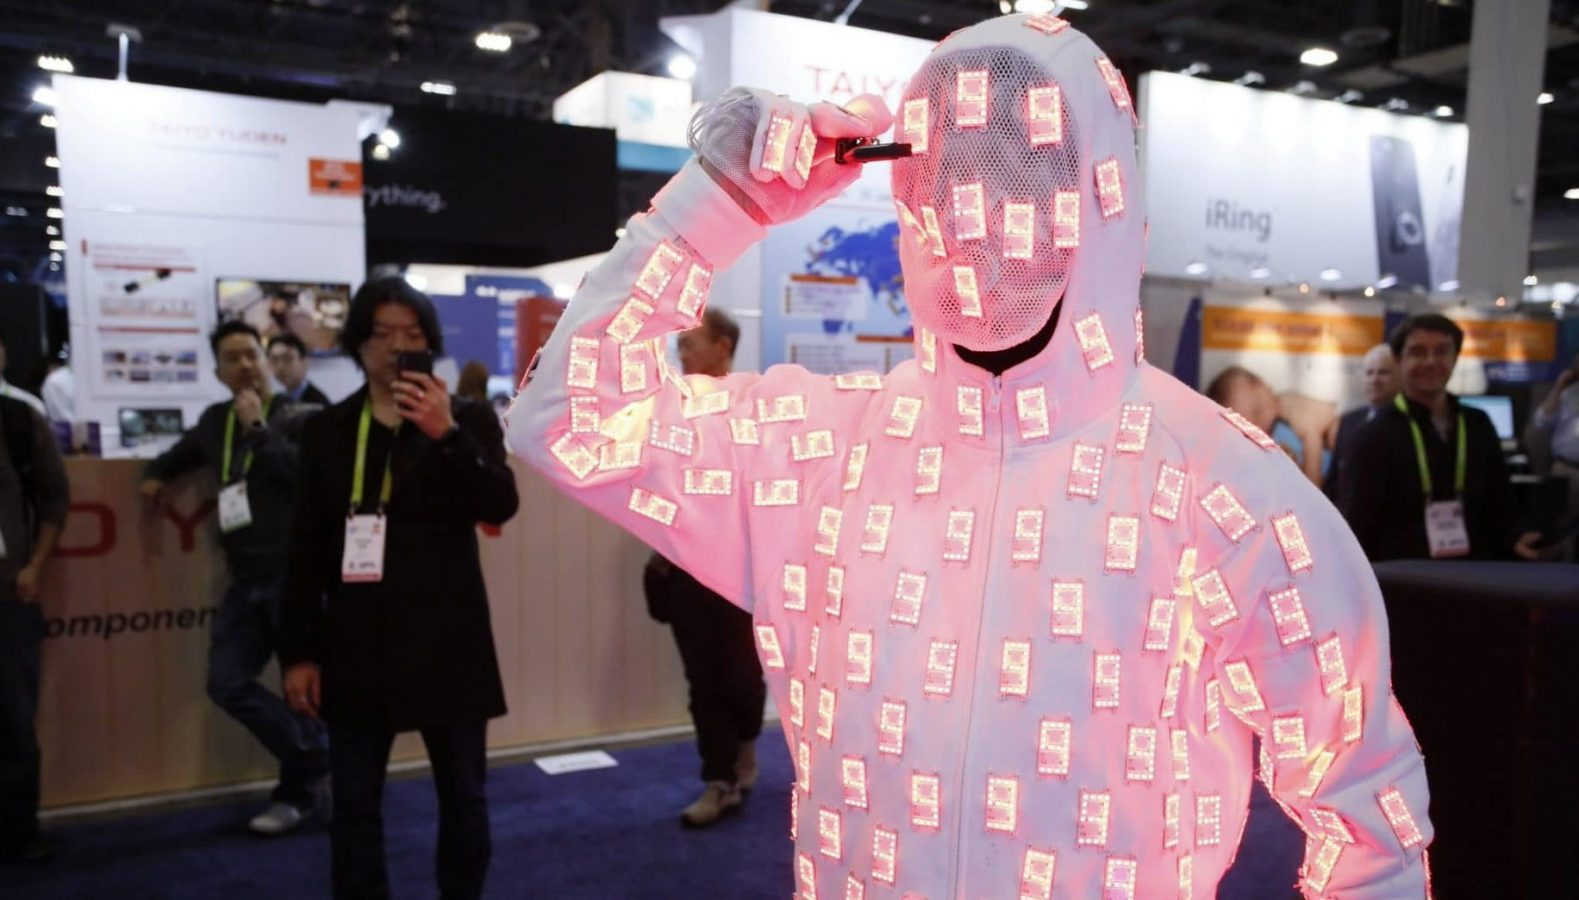 ces man wearing glowing suit at ces 2019